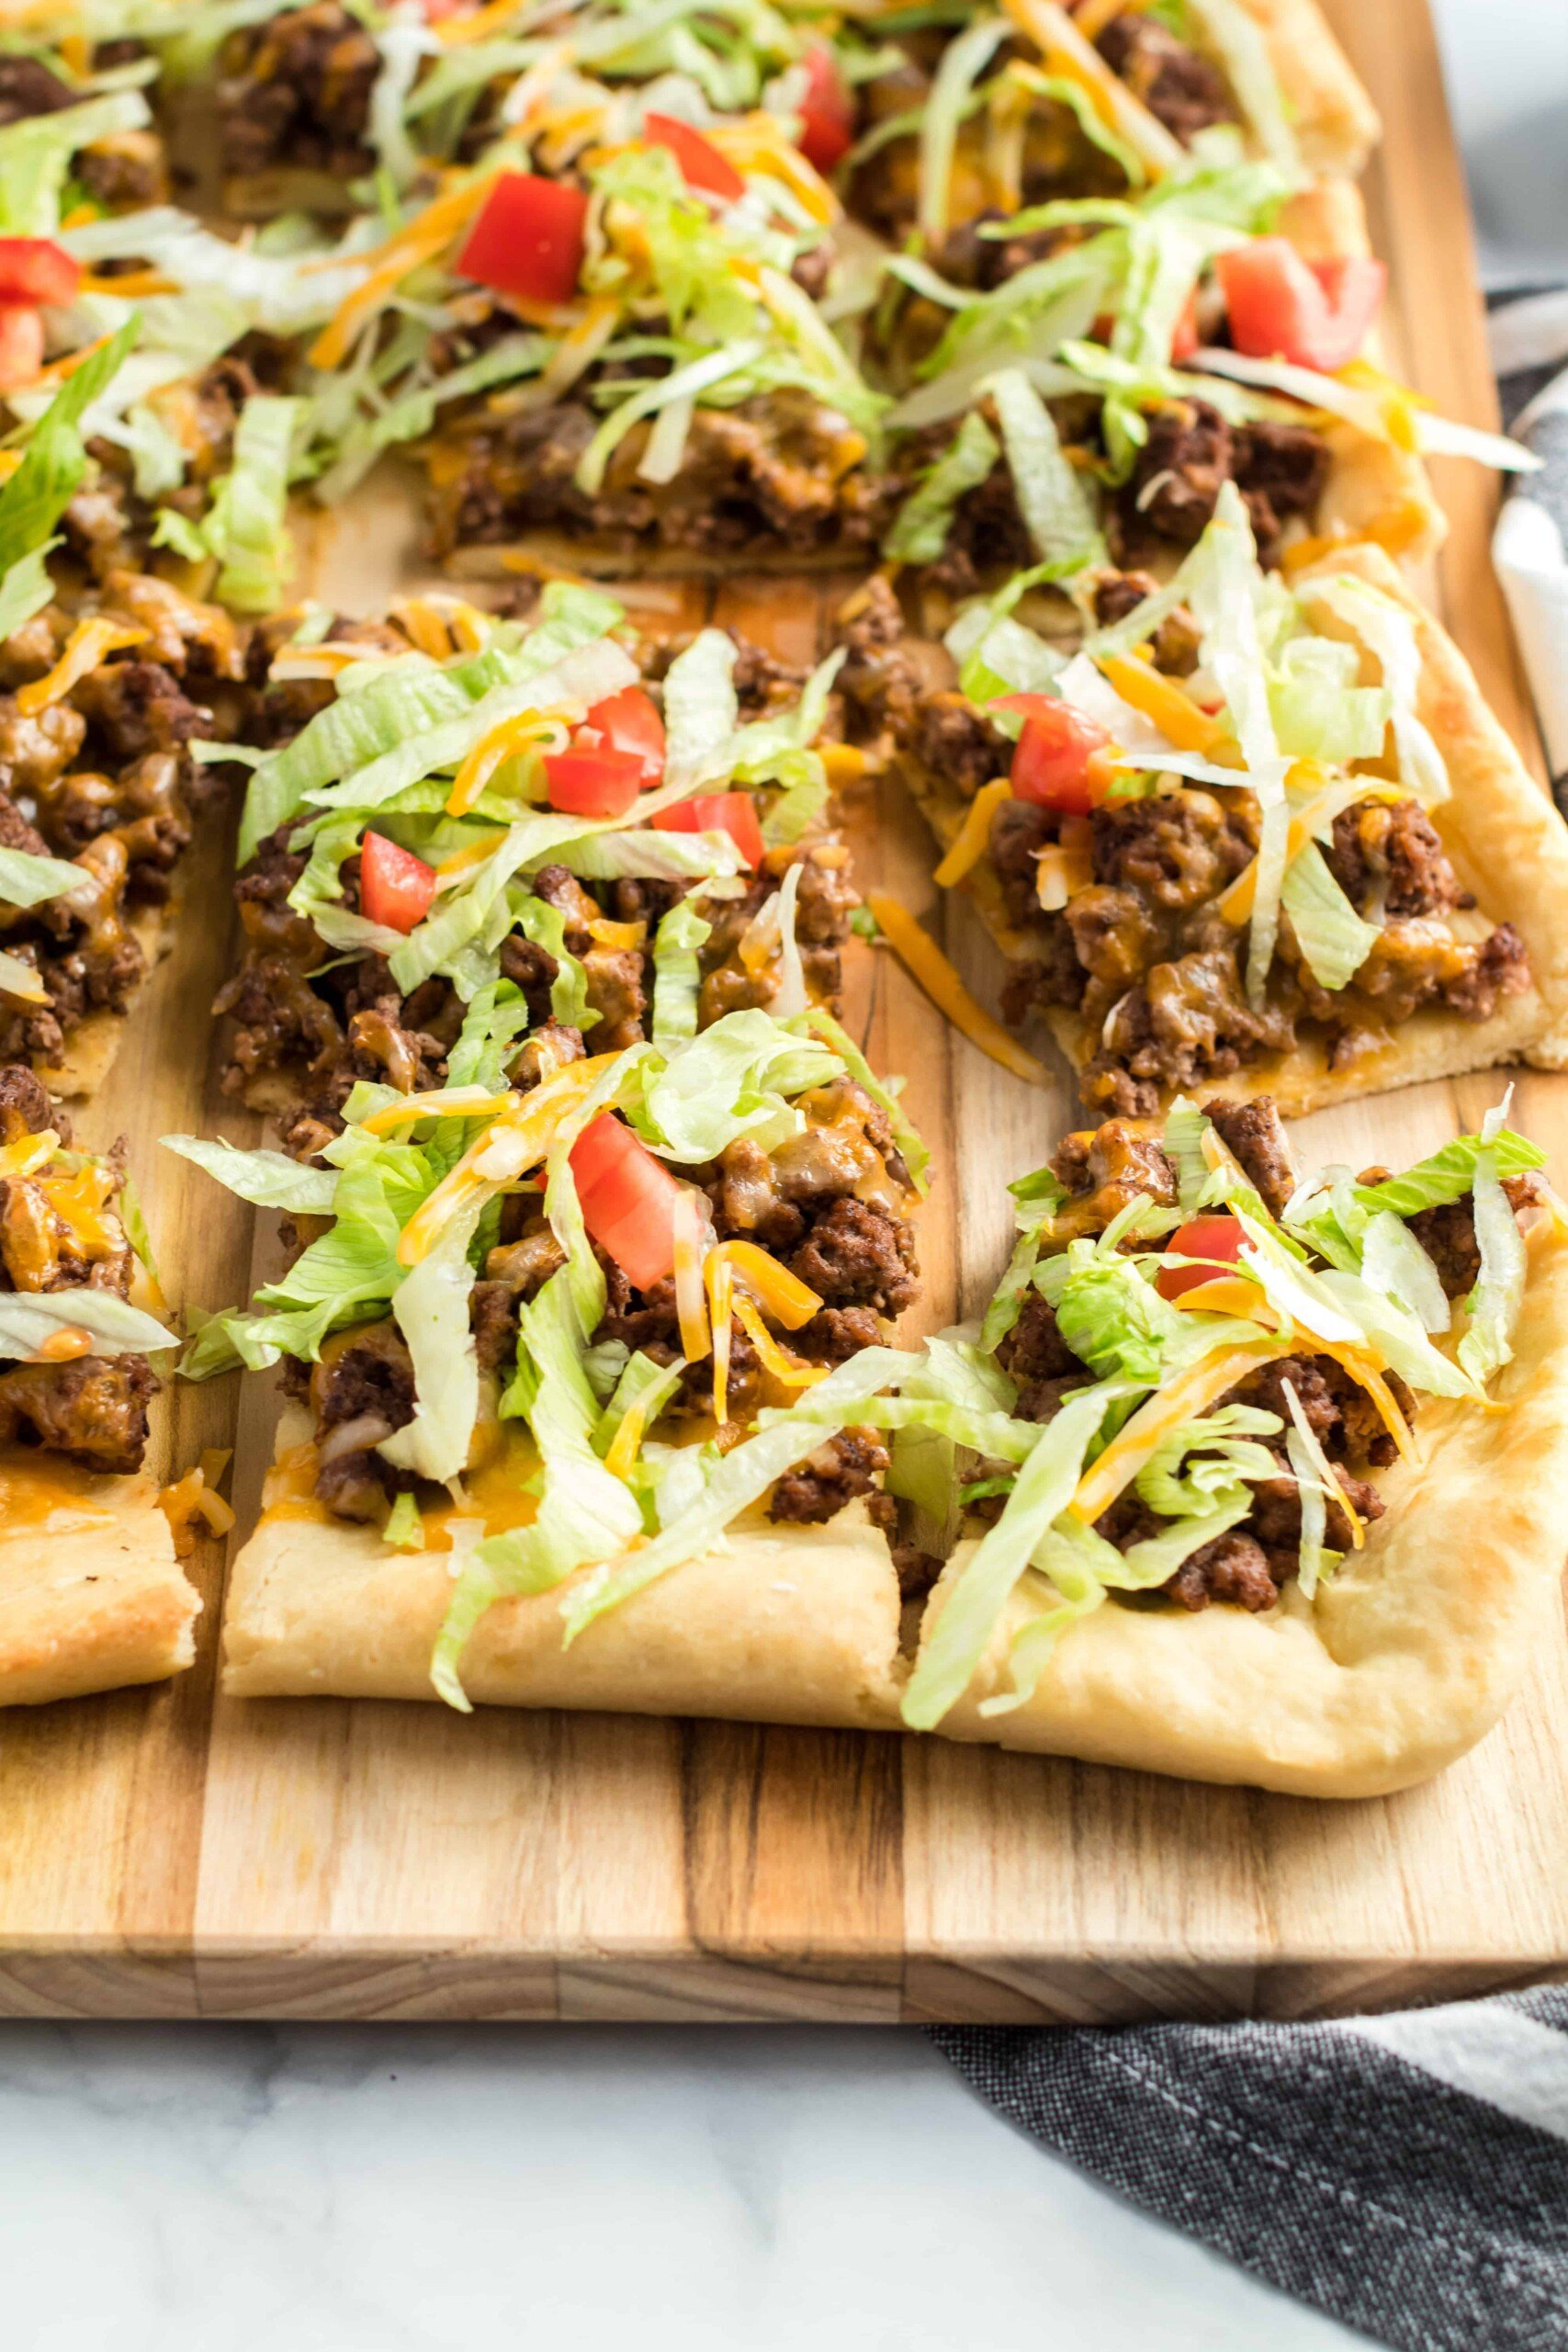 Beef taco pizza with lettuce and tomato cut on a wooden cutting board.